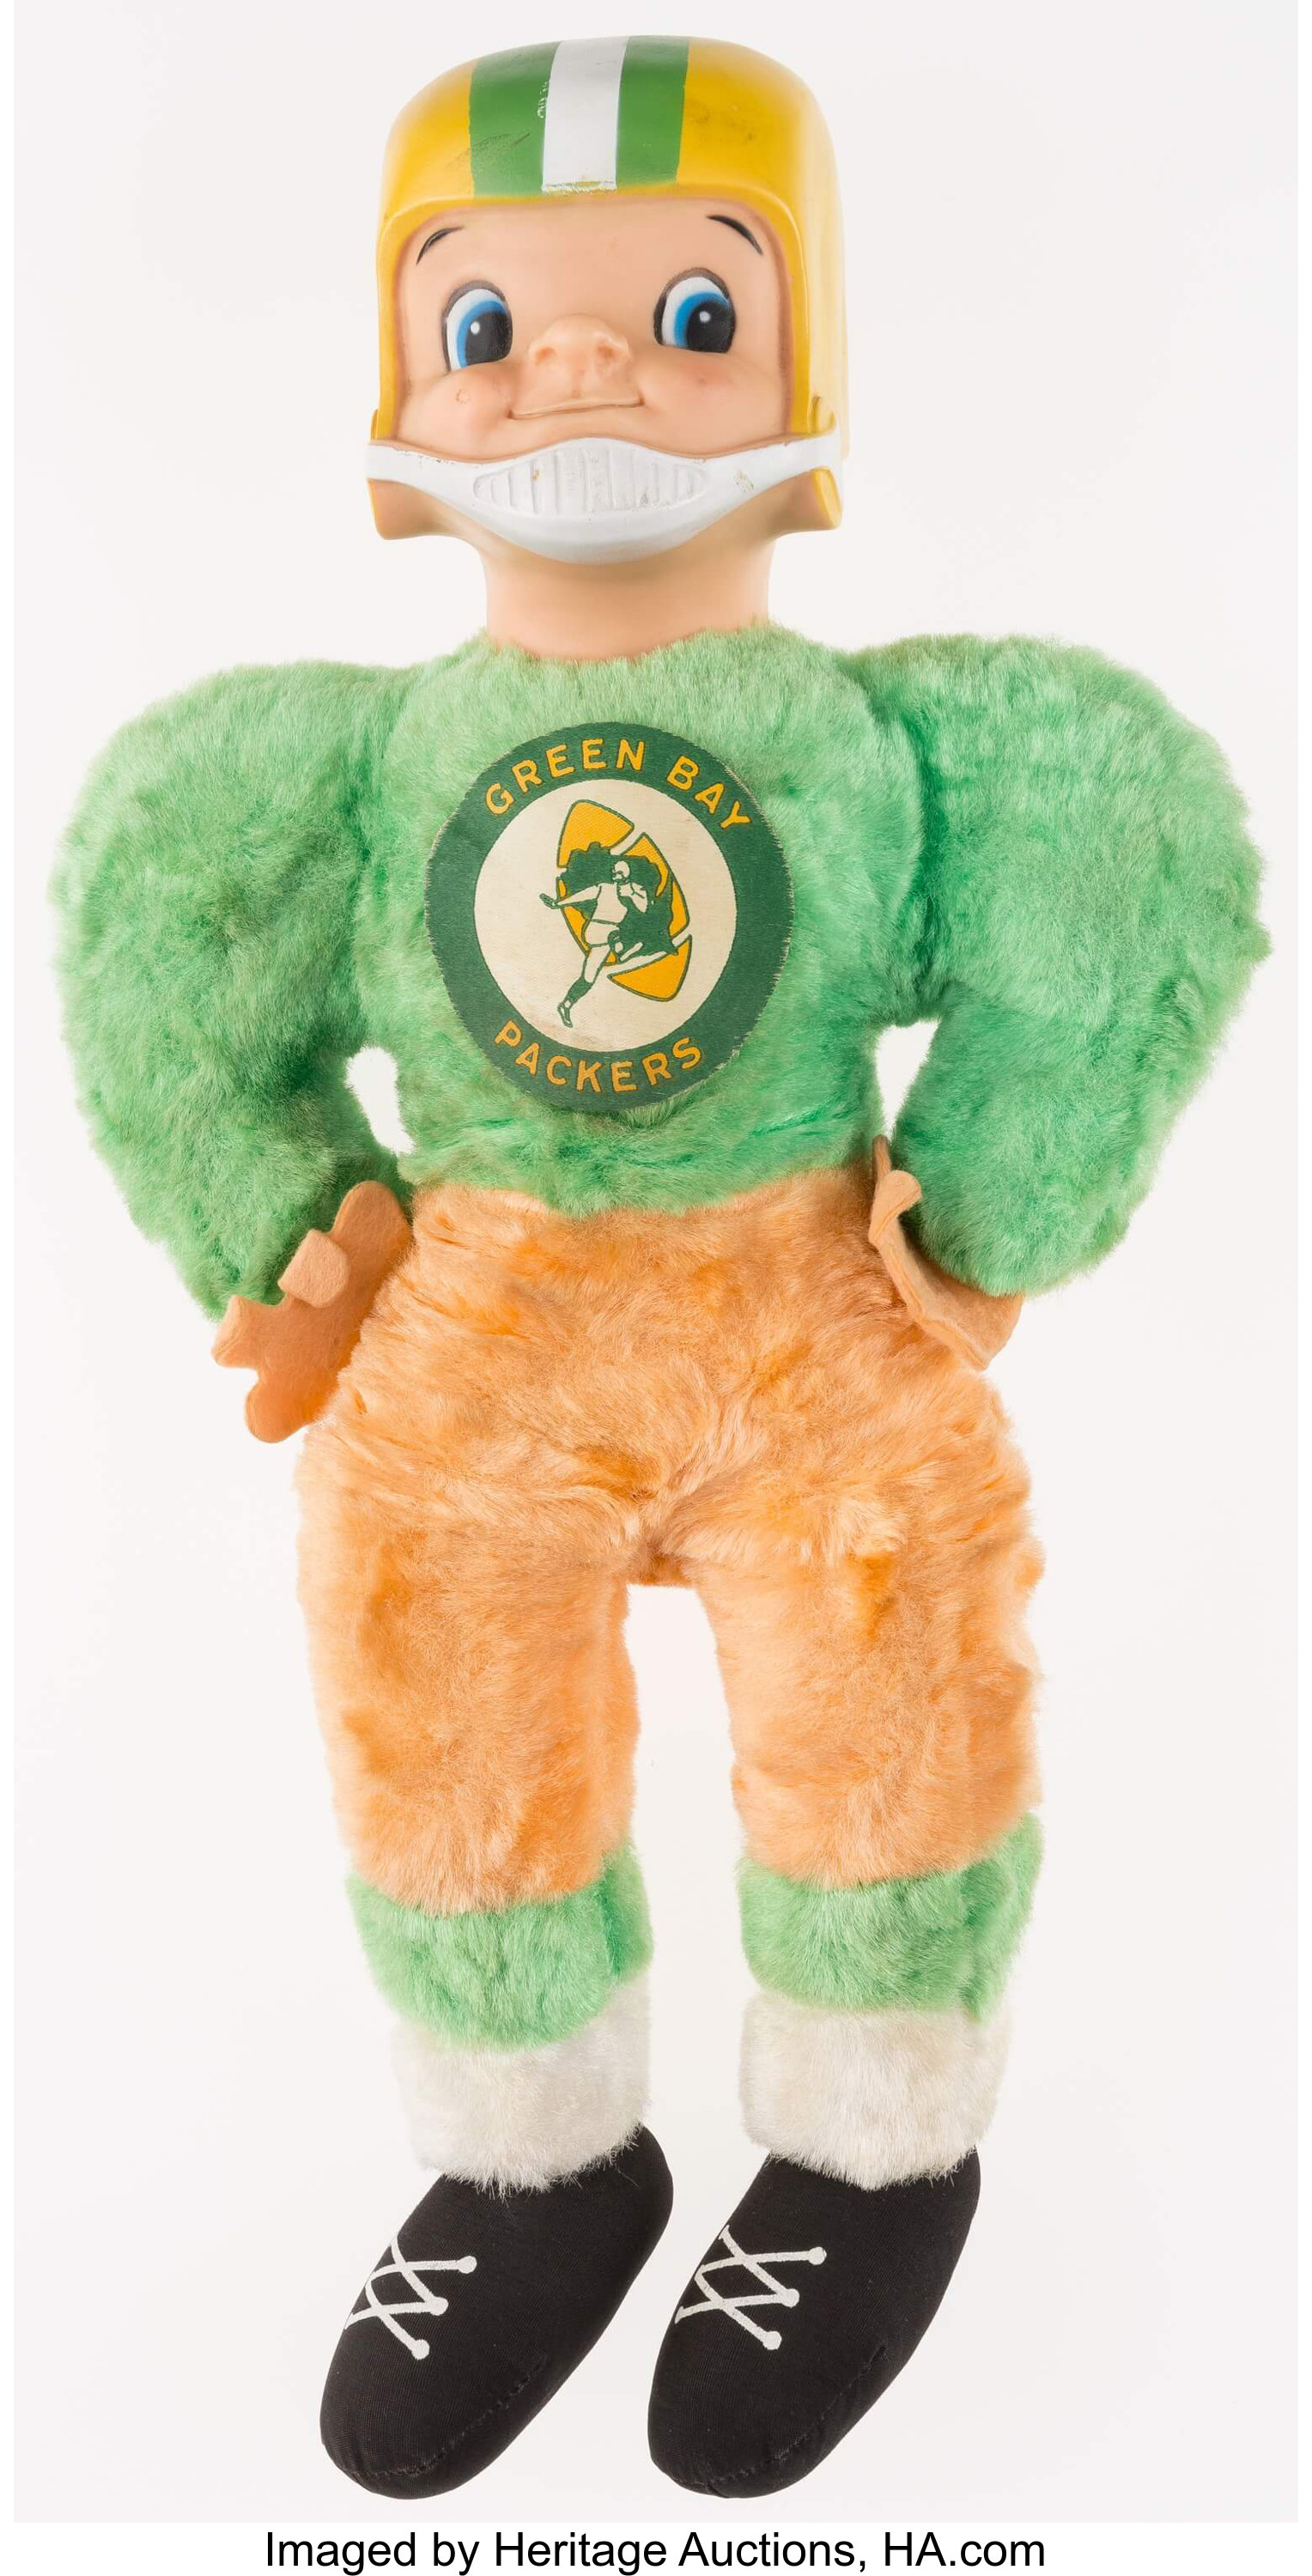 1967 Green Bay Packers Gund Nfl Licensed Stuffed Doll Lot 41142 Heritage Auctions